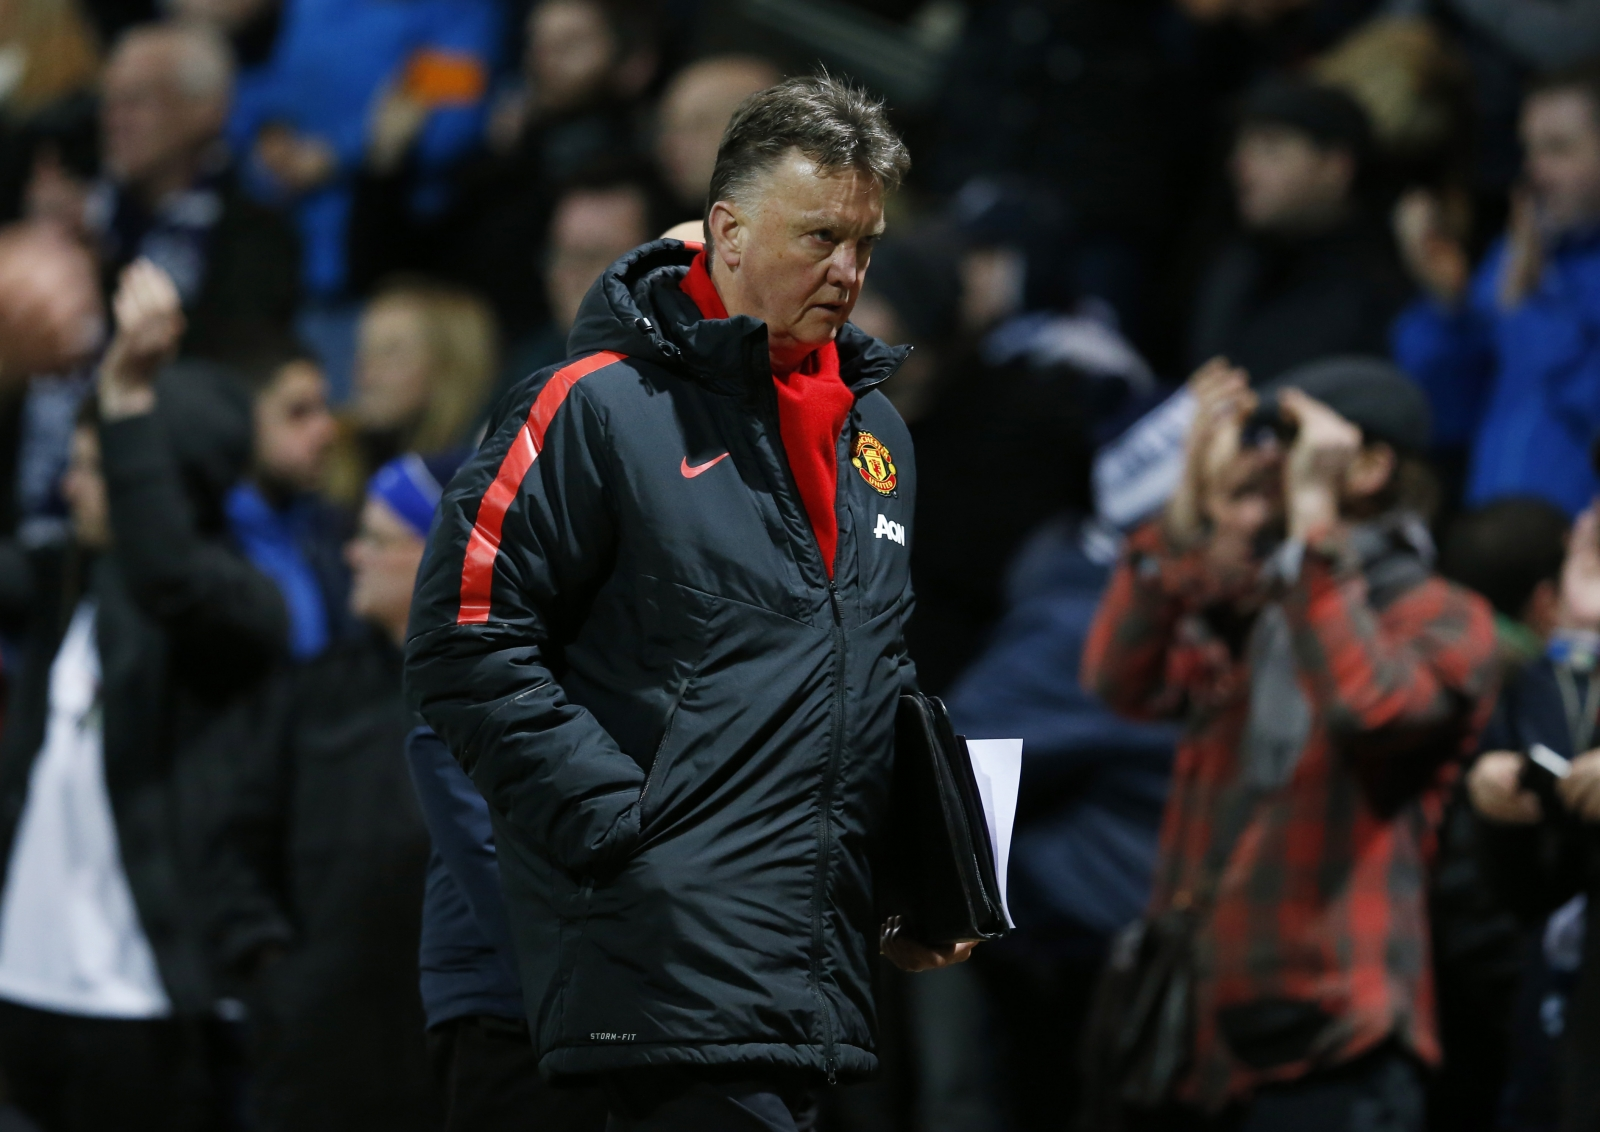 Louis van Gaal takes credit for Manchester Utd turnaround